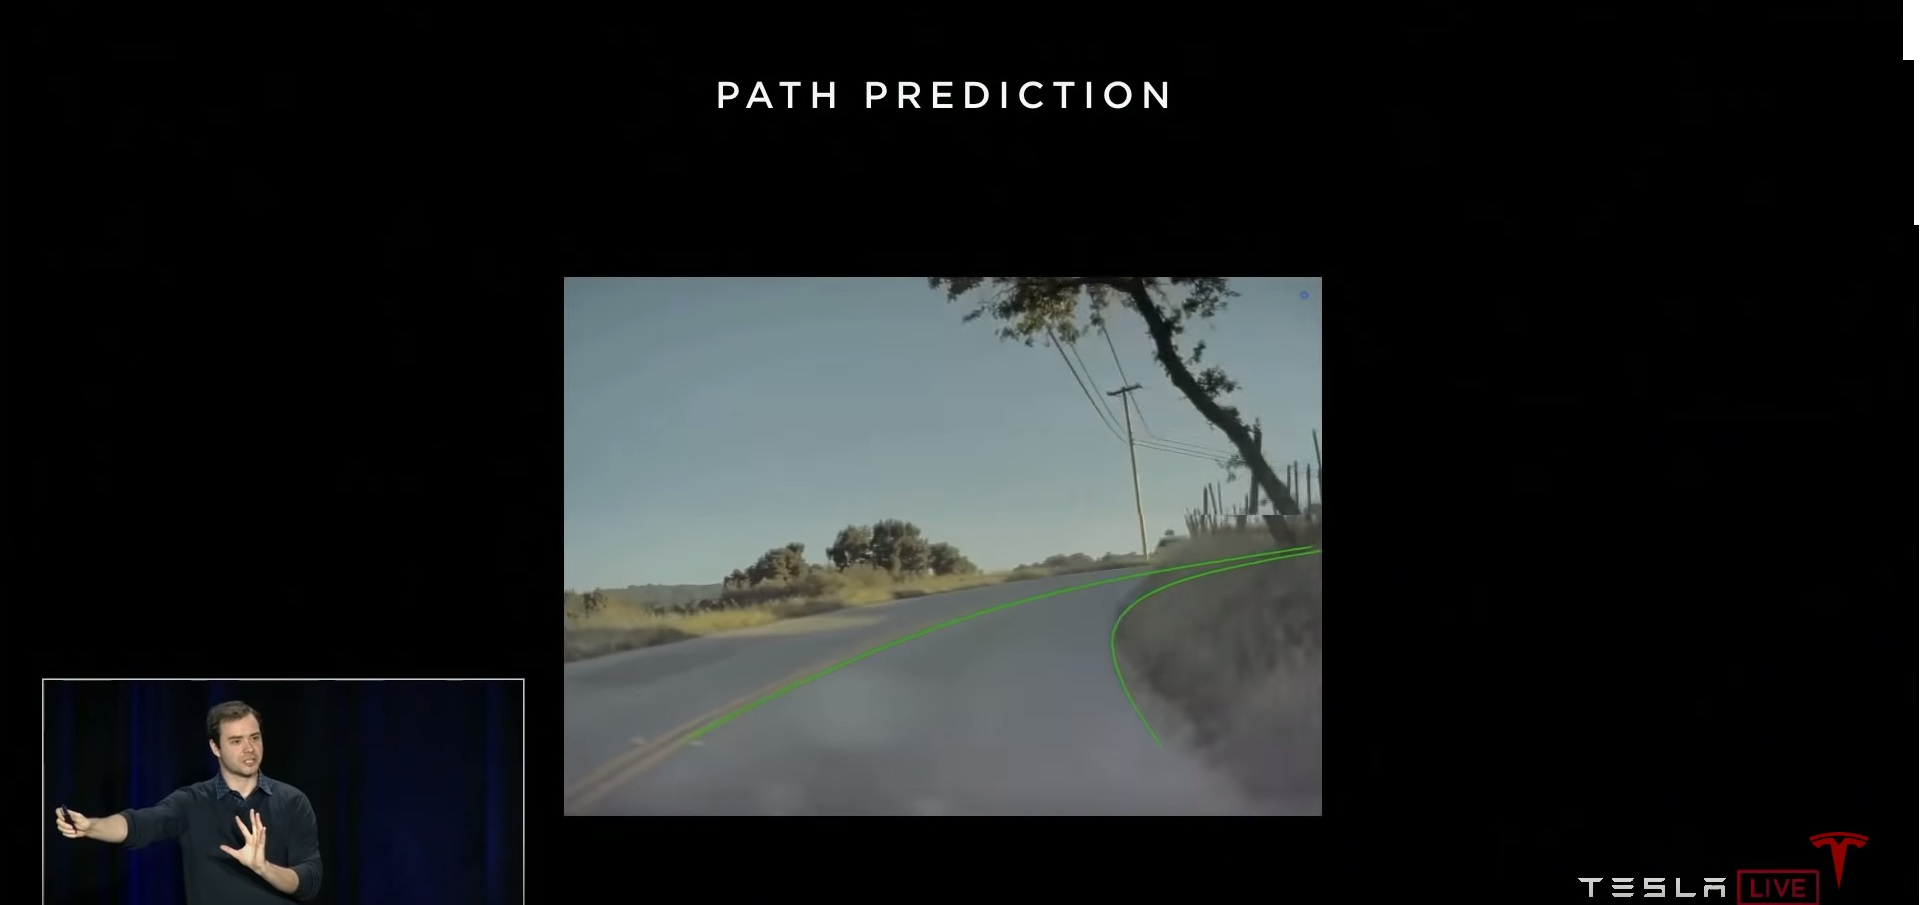 Tesla_Predicted_paths_2